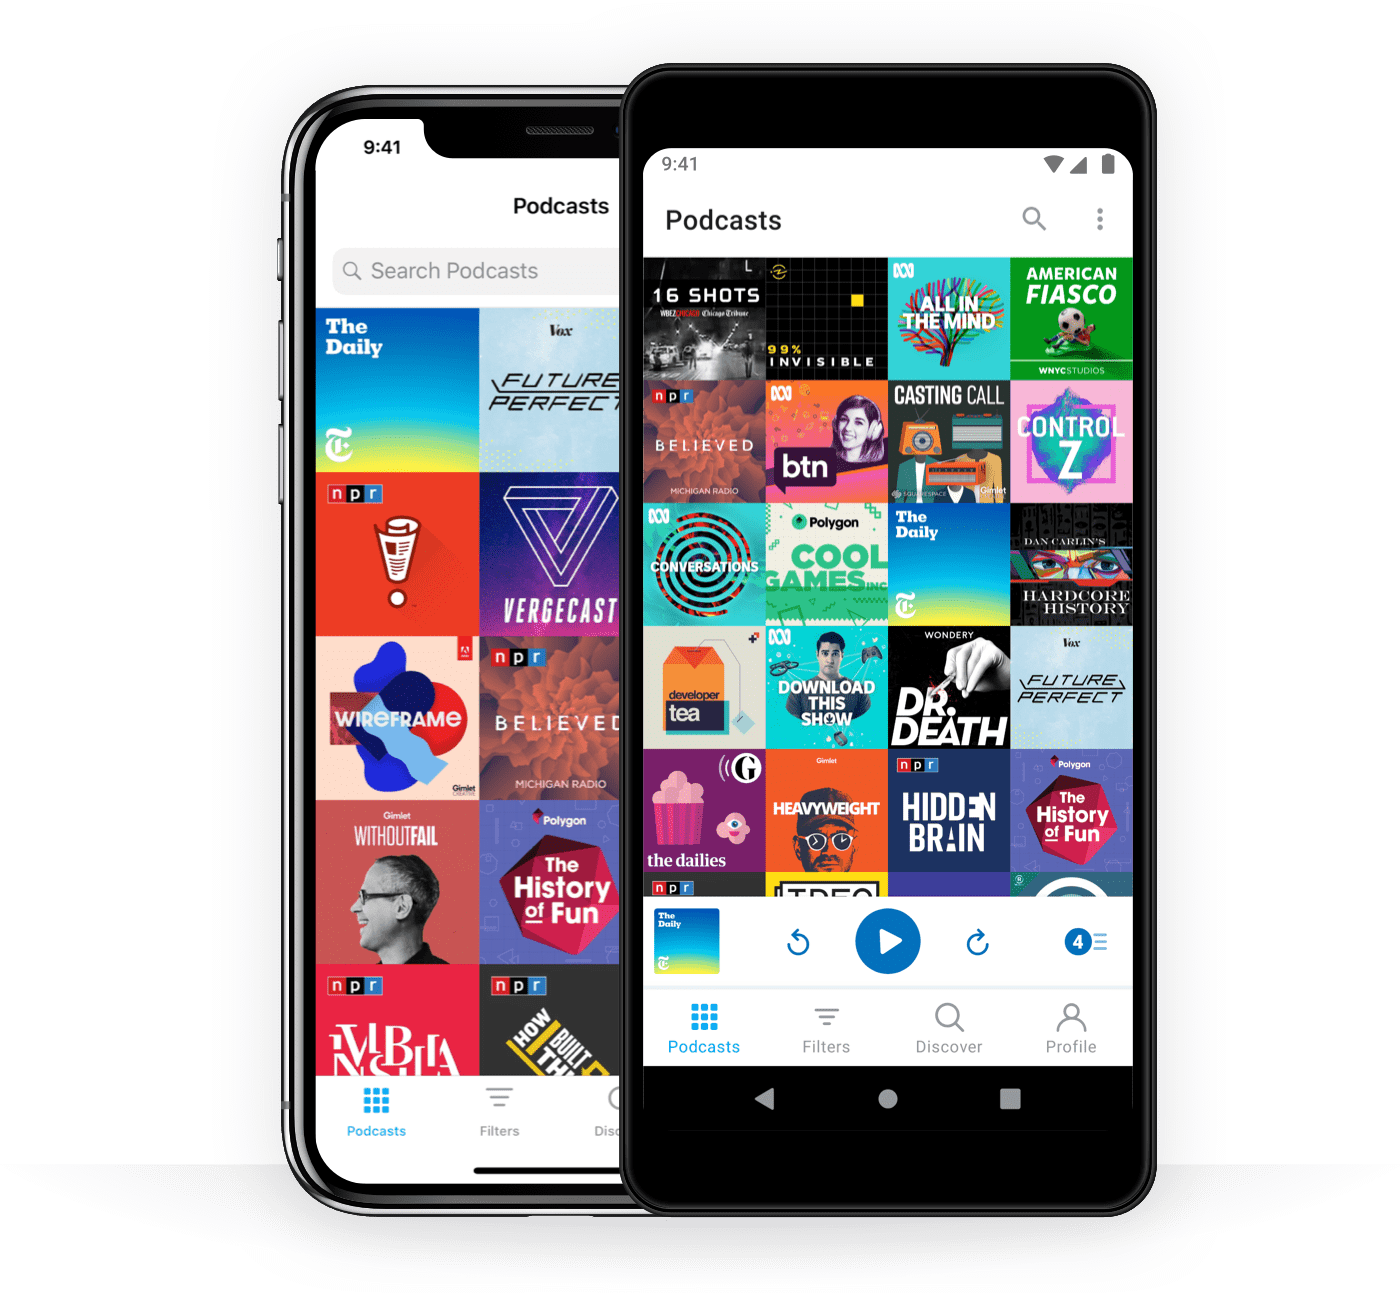 Standalone podcast players like Pocket Casts let you listen to virtually any show on the planet